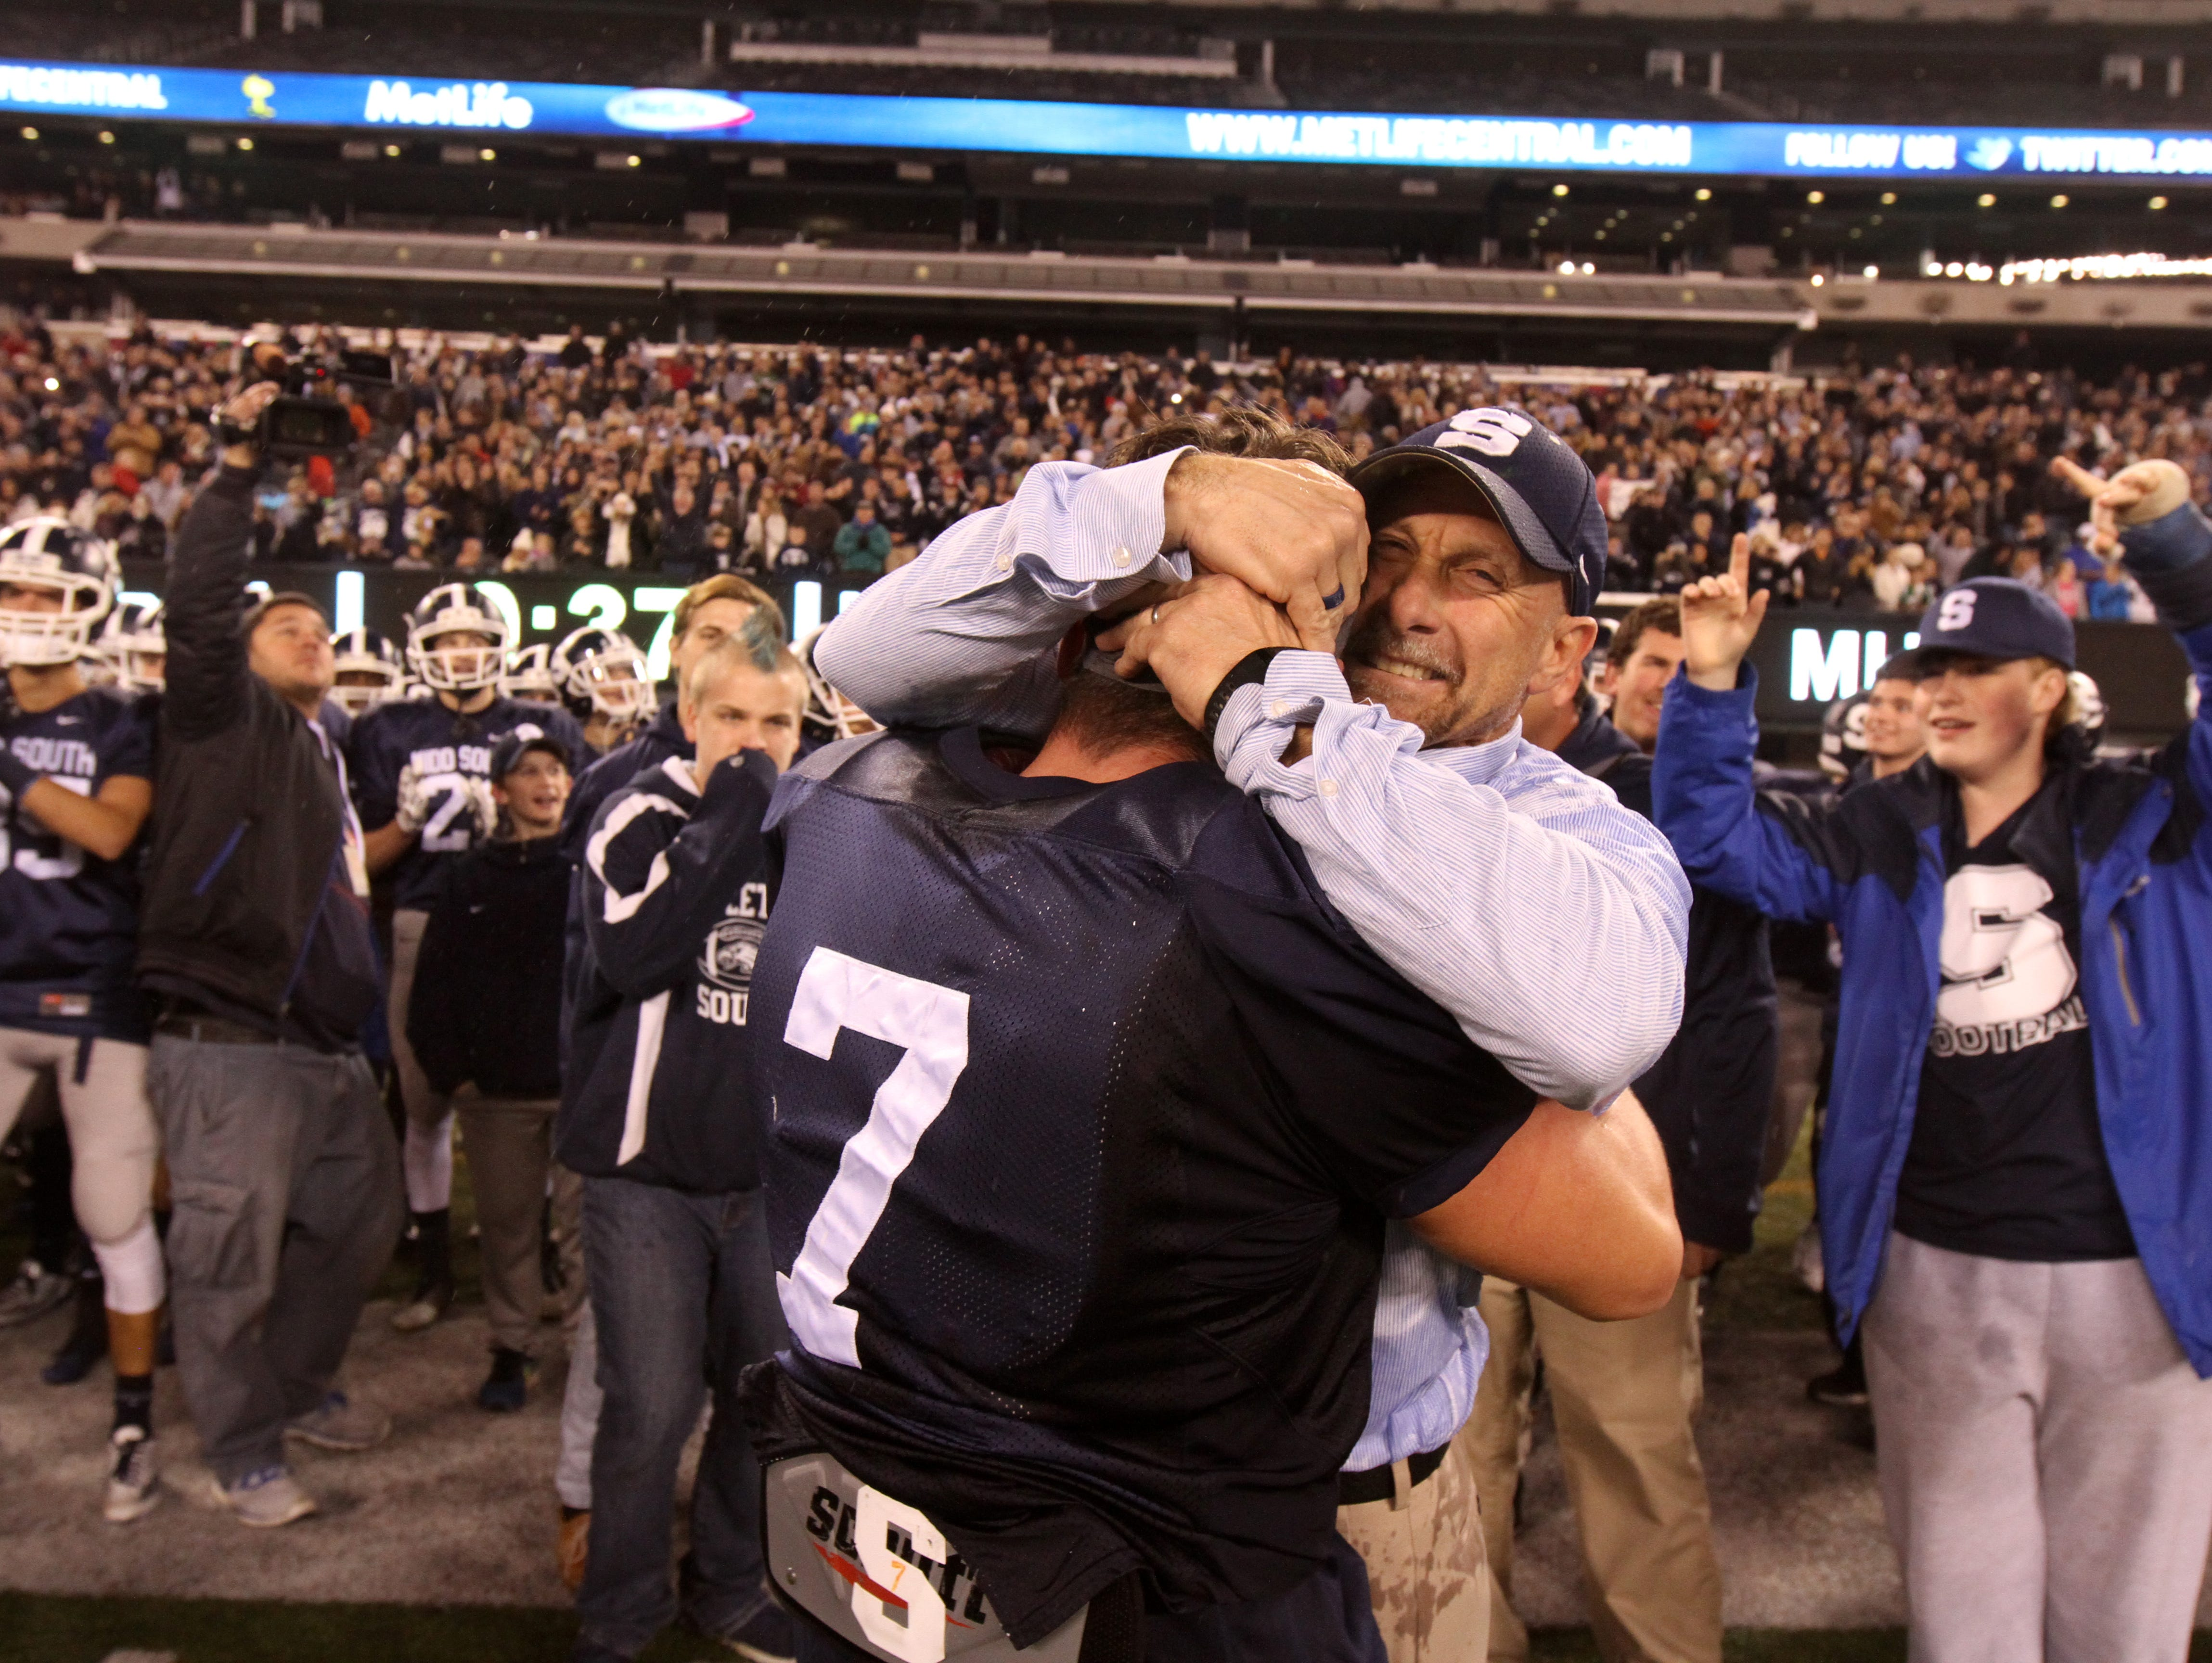 Middletown South High School head coach Steve Antonucci hugs #7 Robert Hulse after winning the state title against Phillipsburg in the North 2 Group IV game of the 2015 NJSIAA/MetLife Stadium High School Football Championships at MetLife Stadium in East Rutherford, NJ Saturday December 5, 2015.